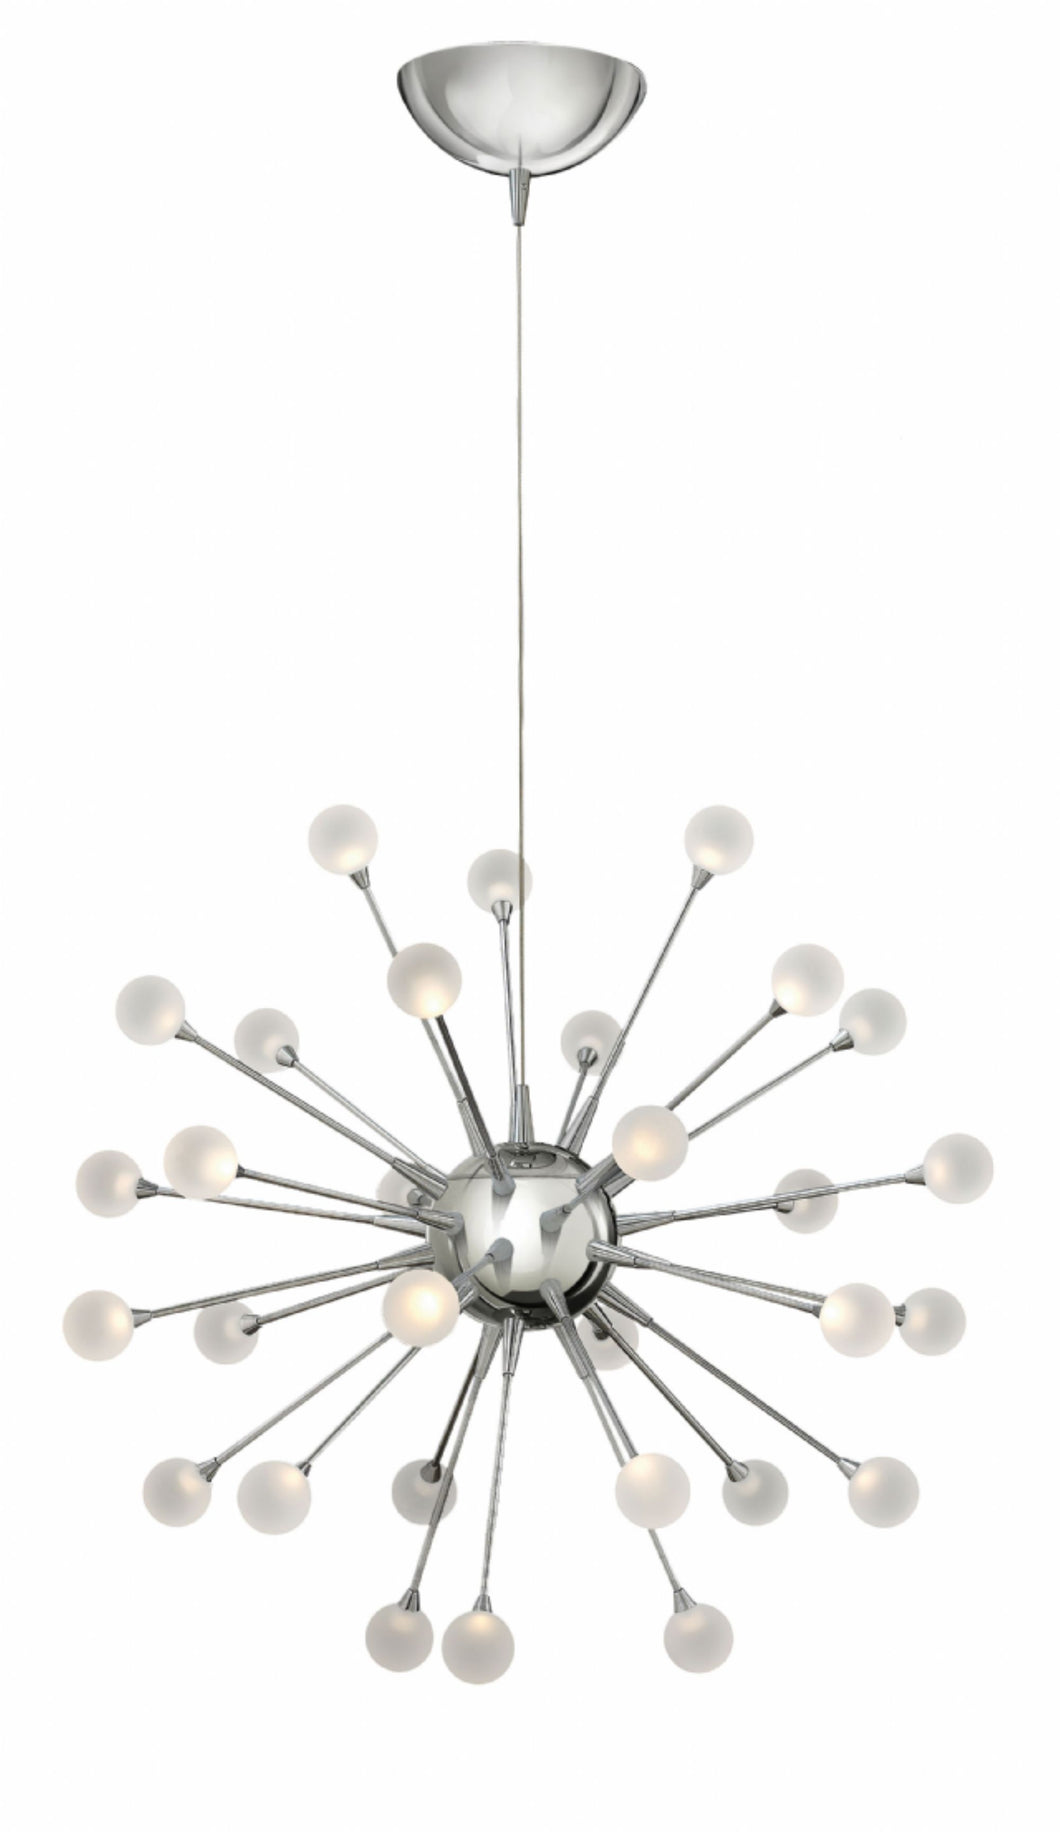 Polished Chrome Single Tier Foyer Chandelier